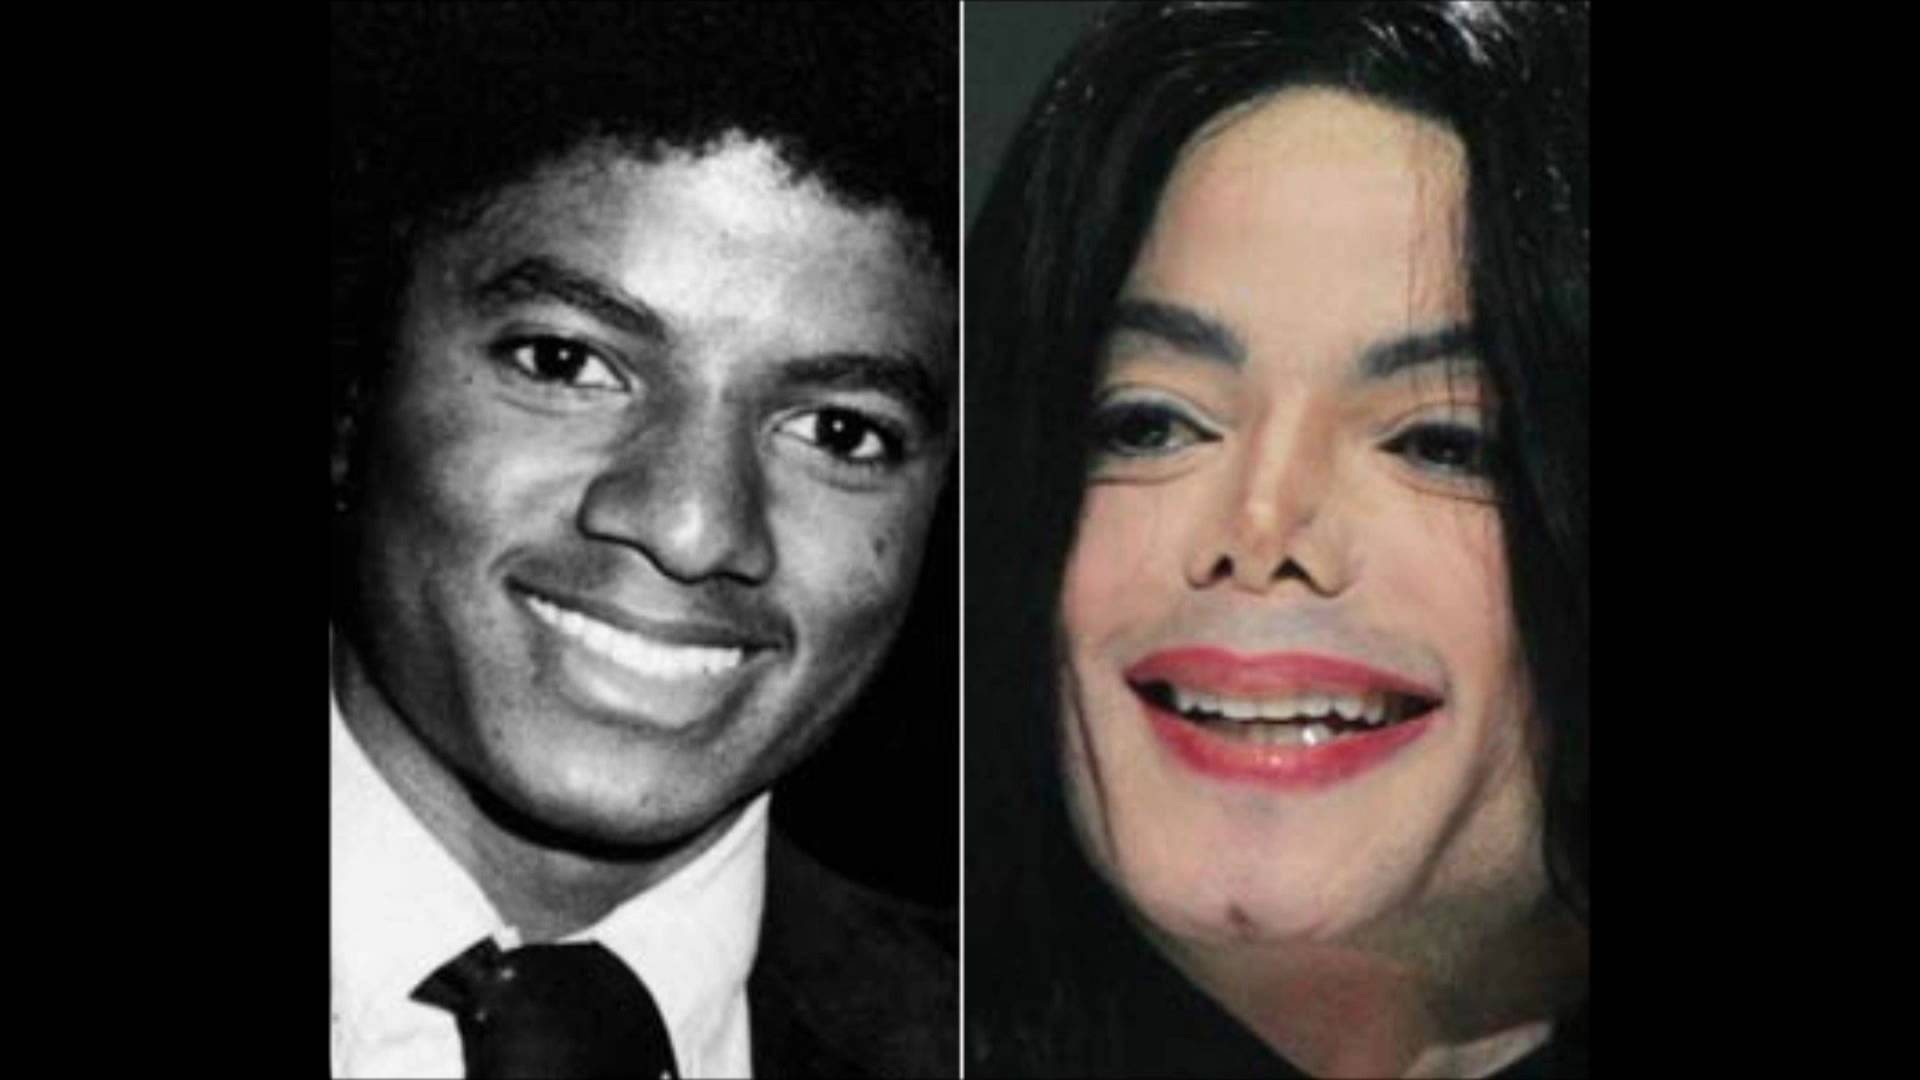 Michael jackson without plastic surgery